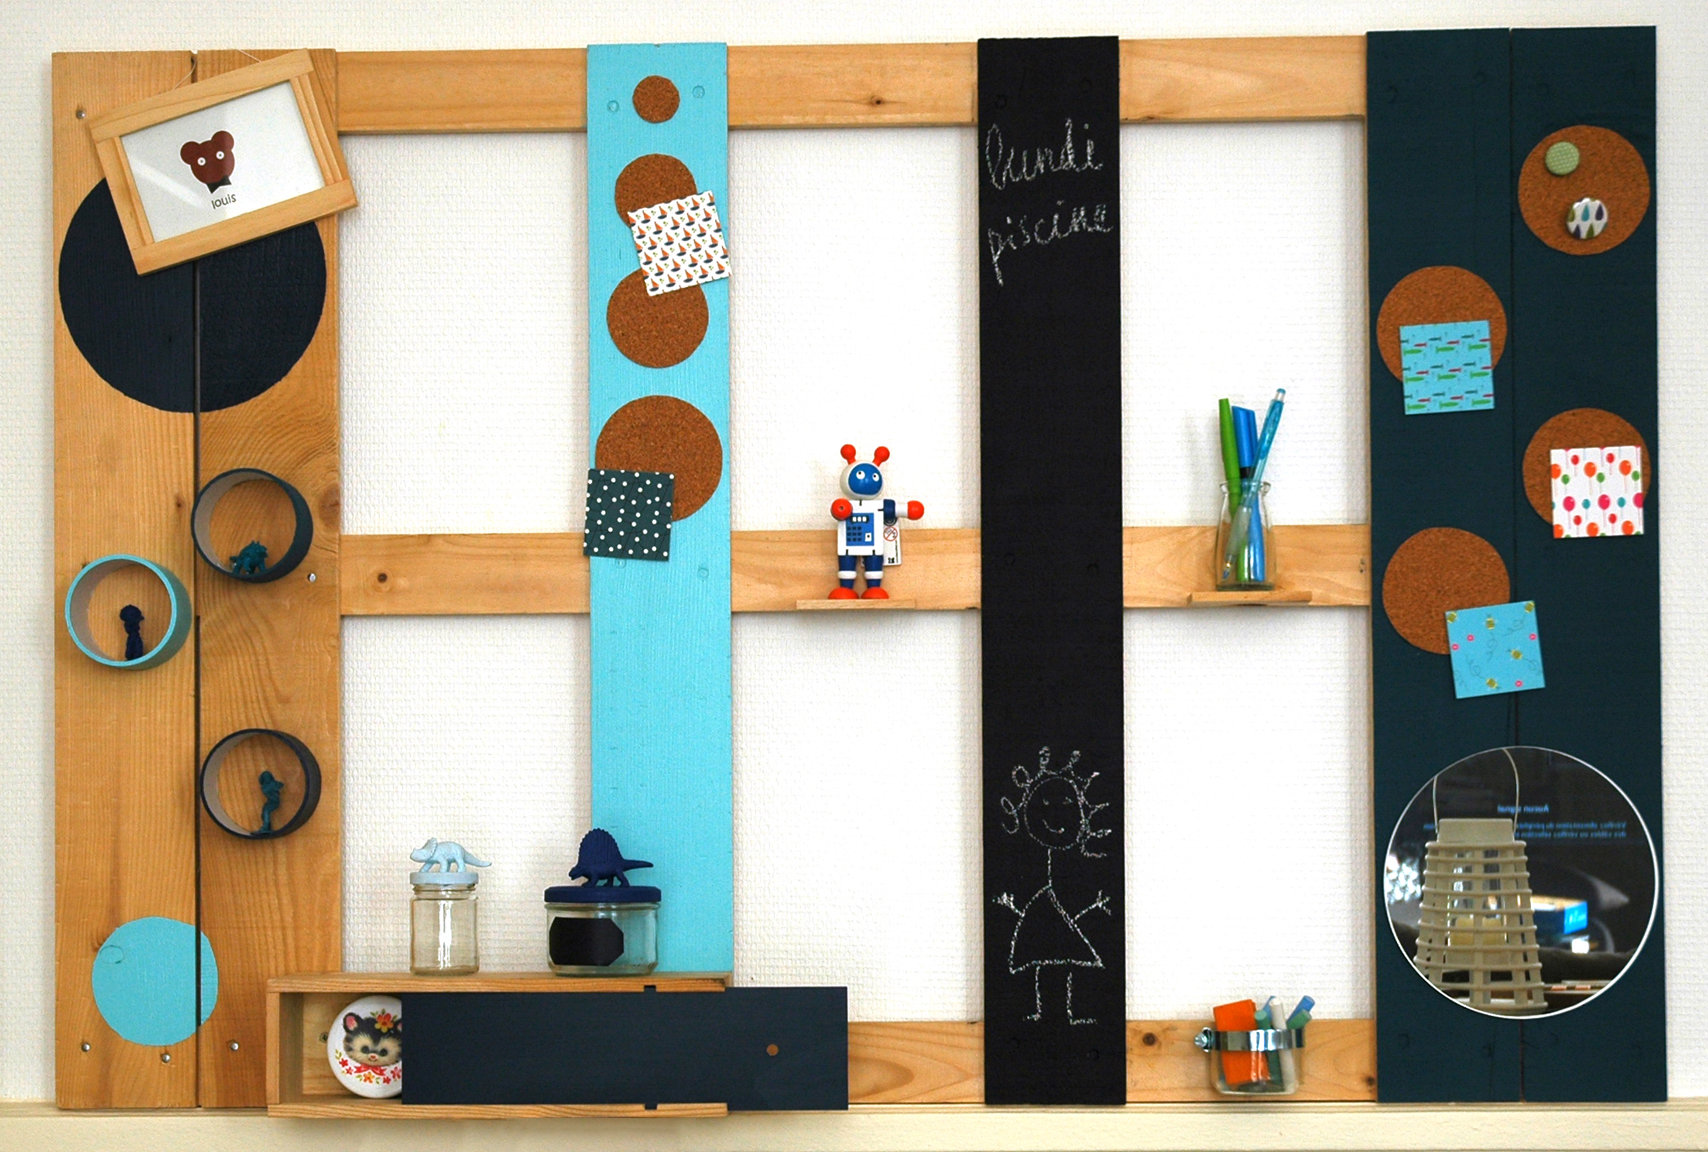 tutoriel diy l 39 organiseur mural en palette. Black Bedroom Furniture Sets. Home Design Ideas